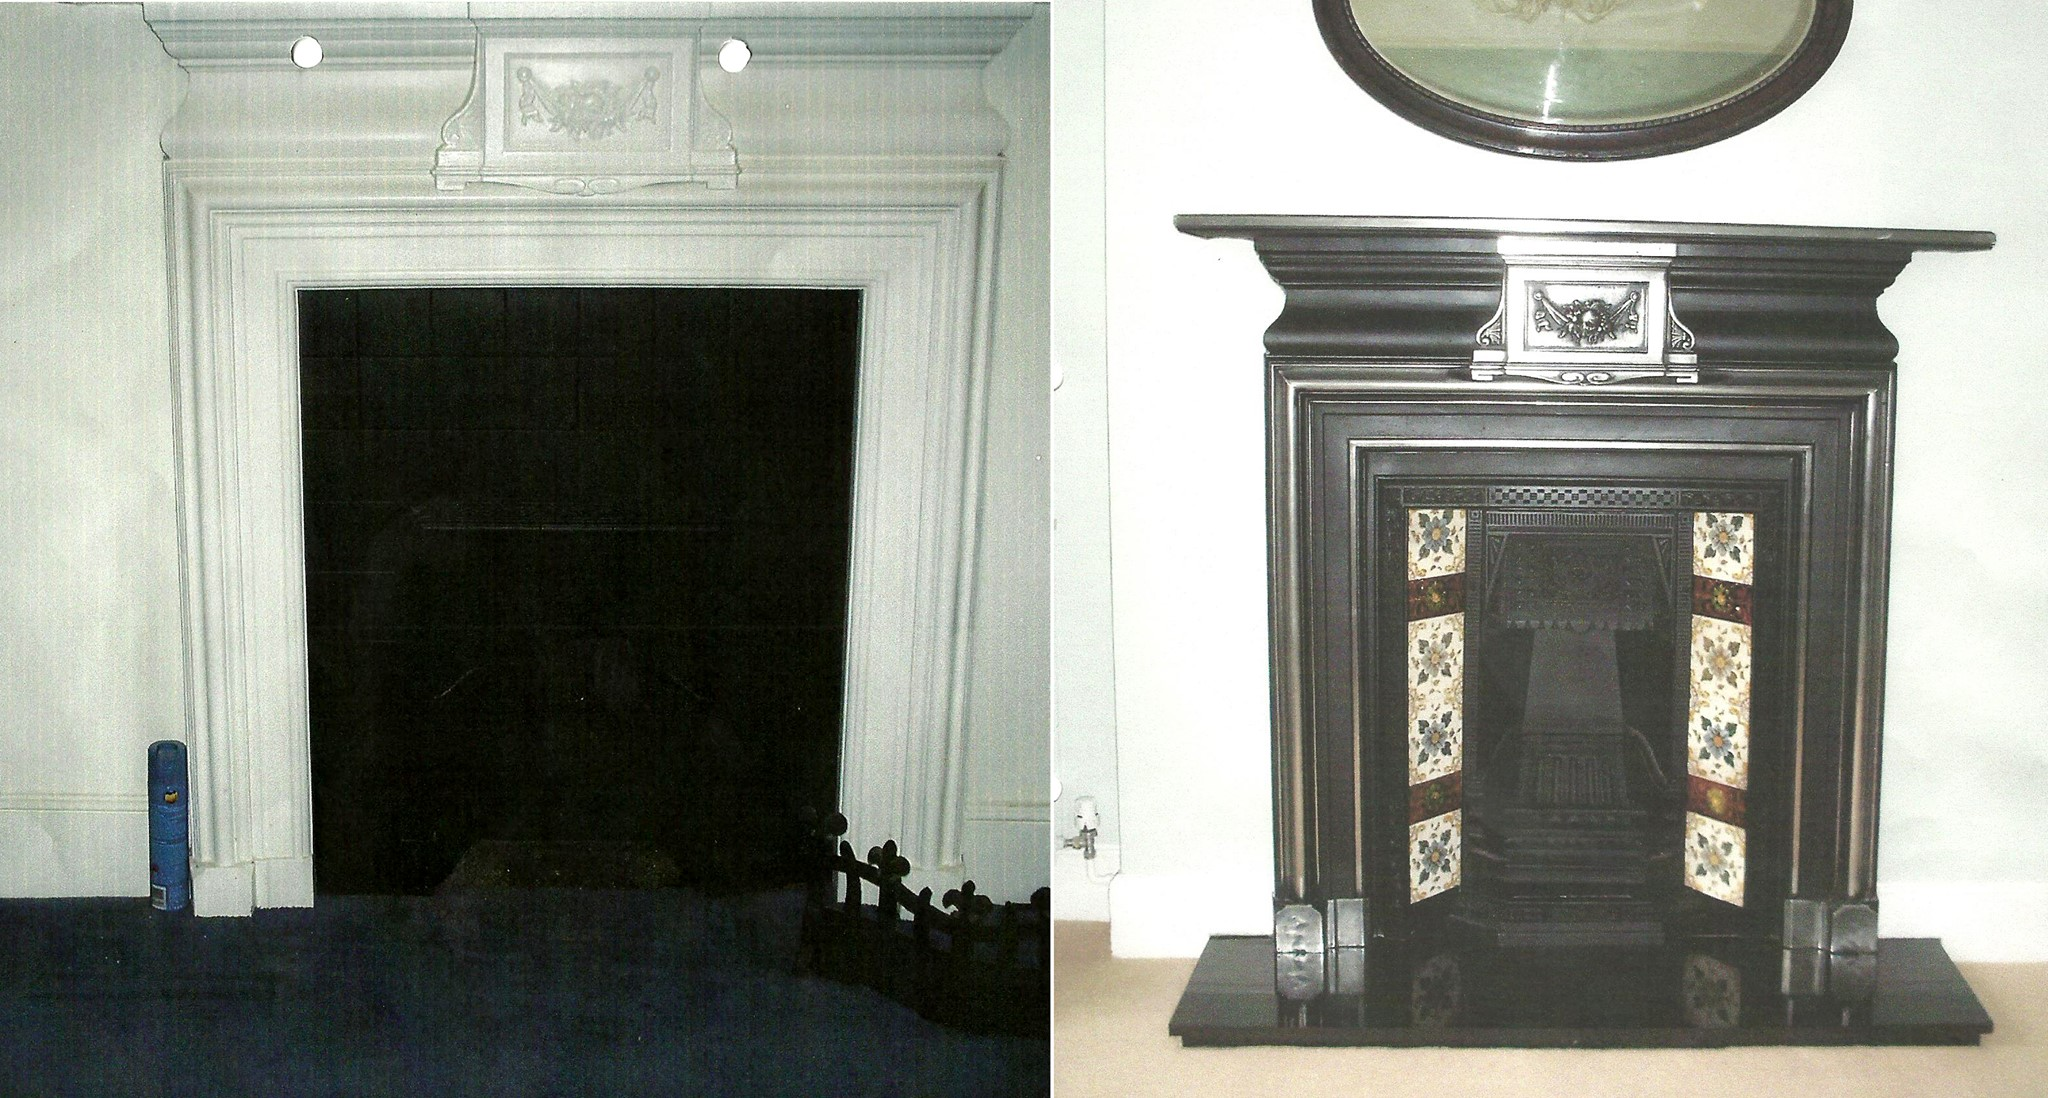 We Offer A Full Fireplace Restoration Service Covering London And Surrounding Areas